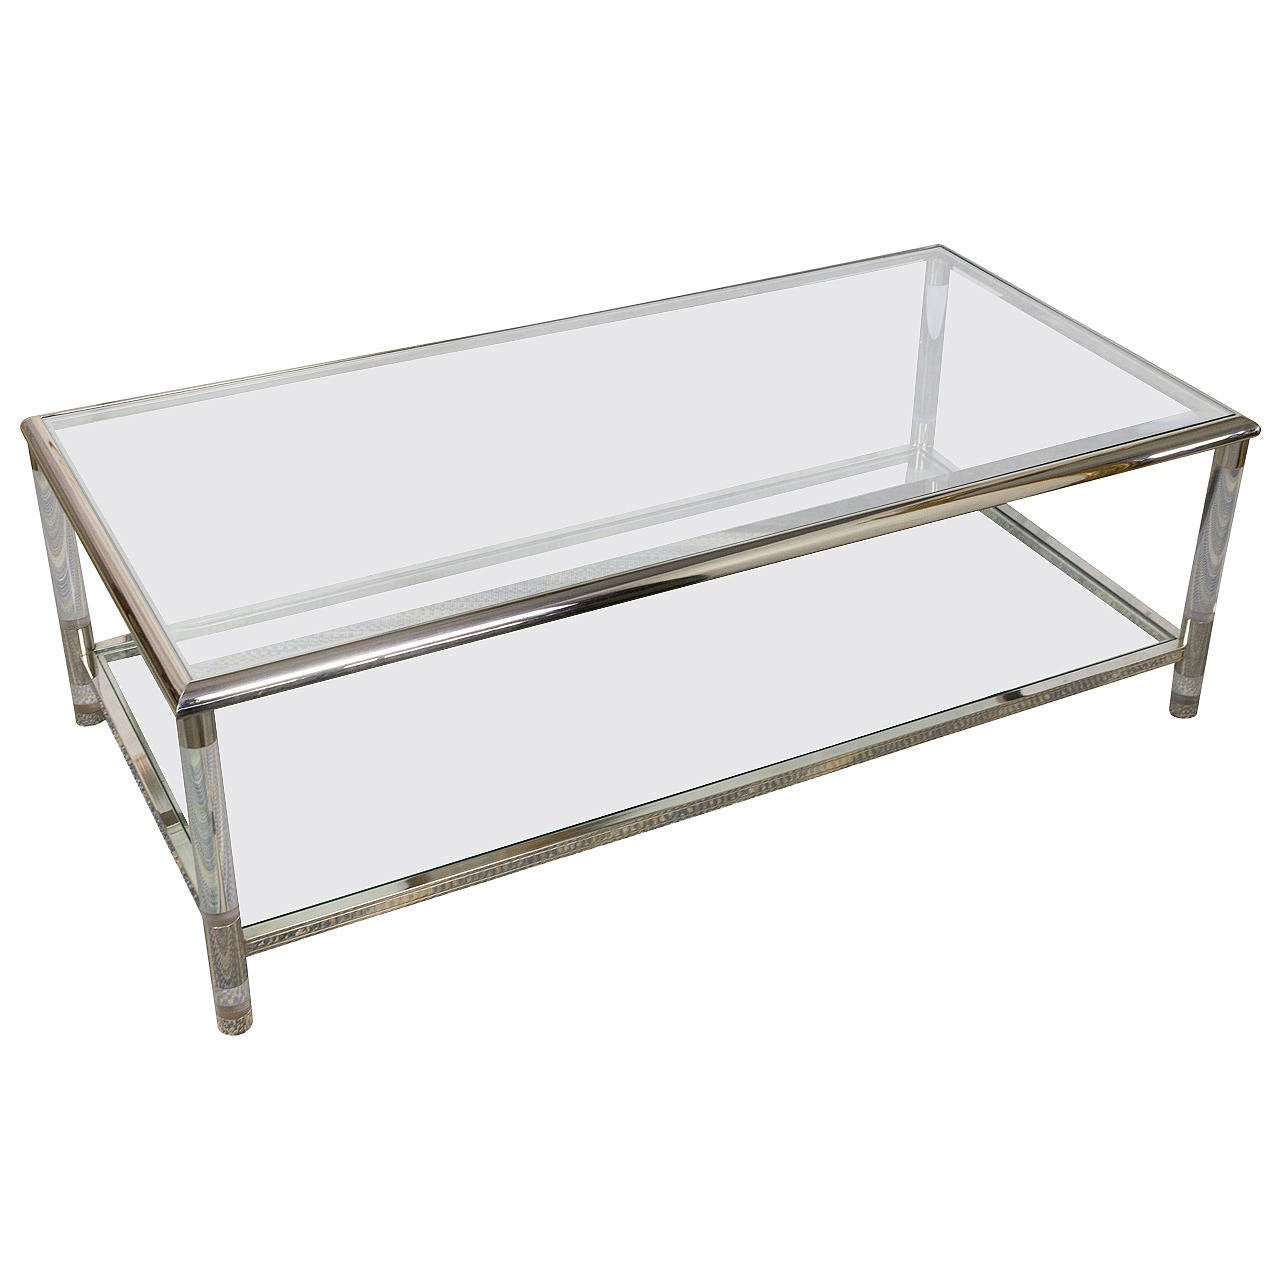 French 1960s Rectangular Lucite Chrome And Glass Coffee Table For Sale At 1stdibs